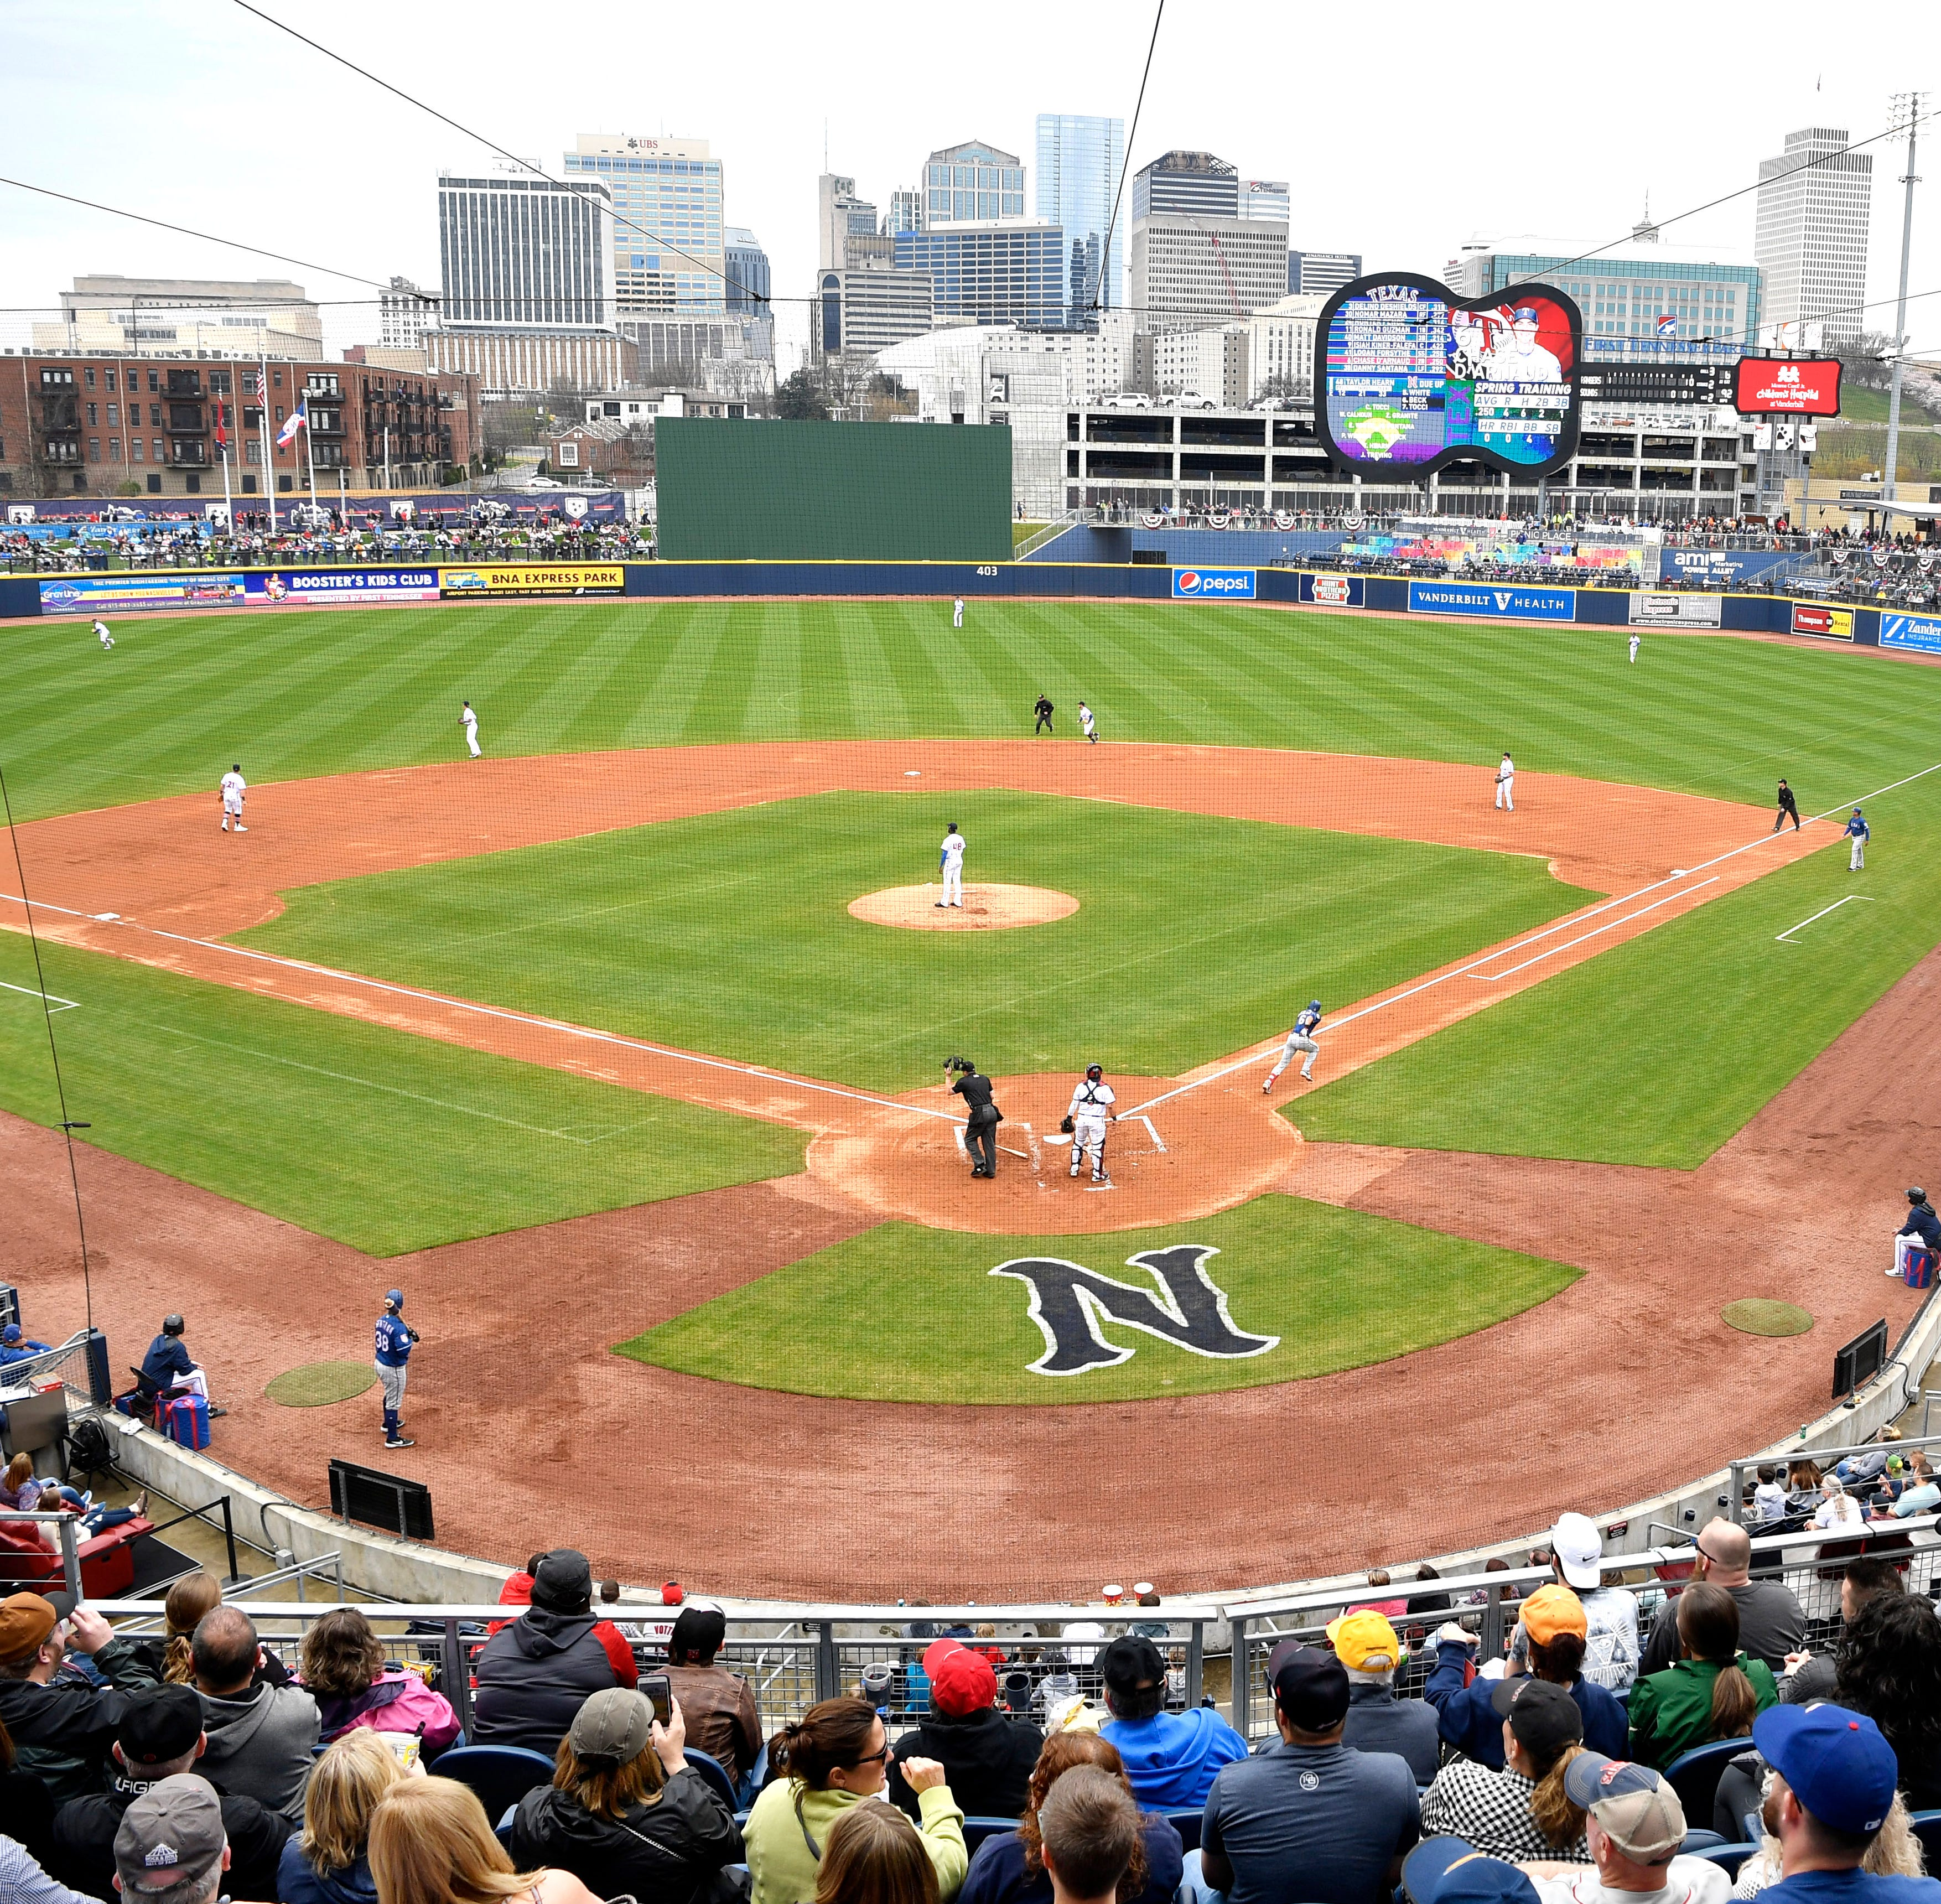 Bargain baseball: Nashville Sounds offer cheap tickets and fun promotions in 2019